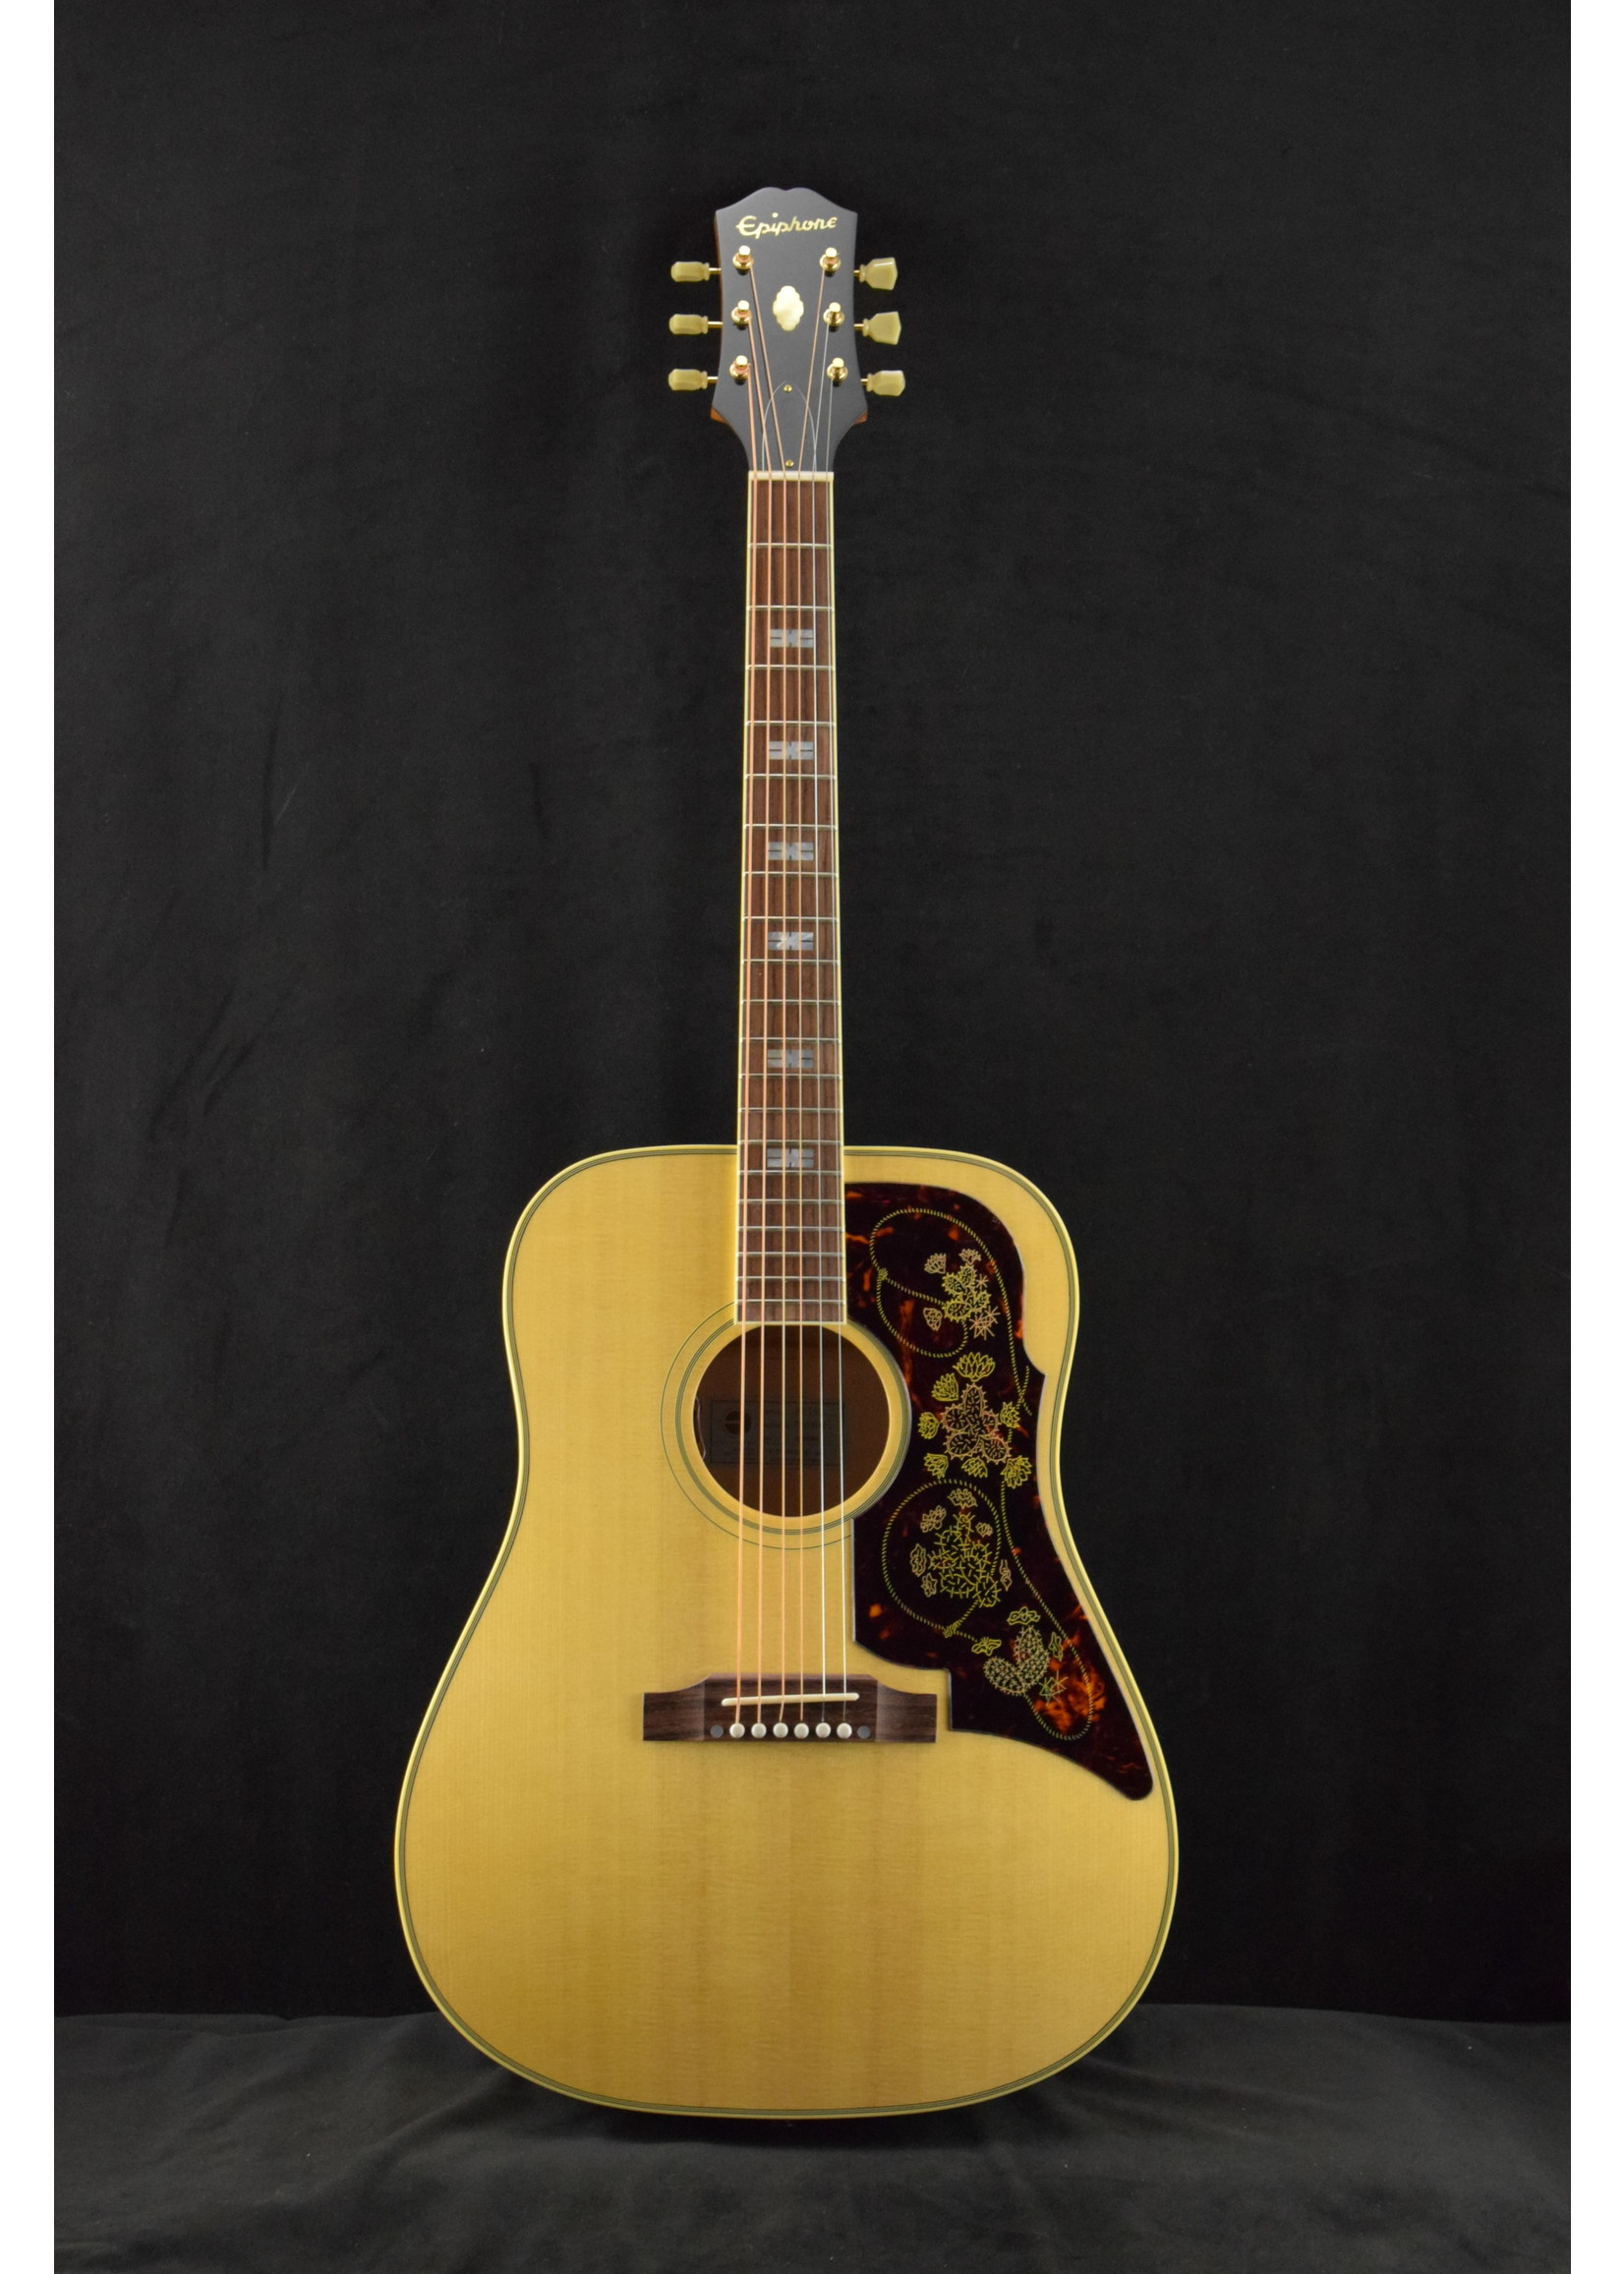 Epiphone Epiphone Frontier (USA Collection) FT-110 Antique Natural